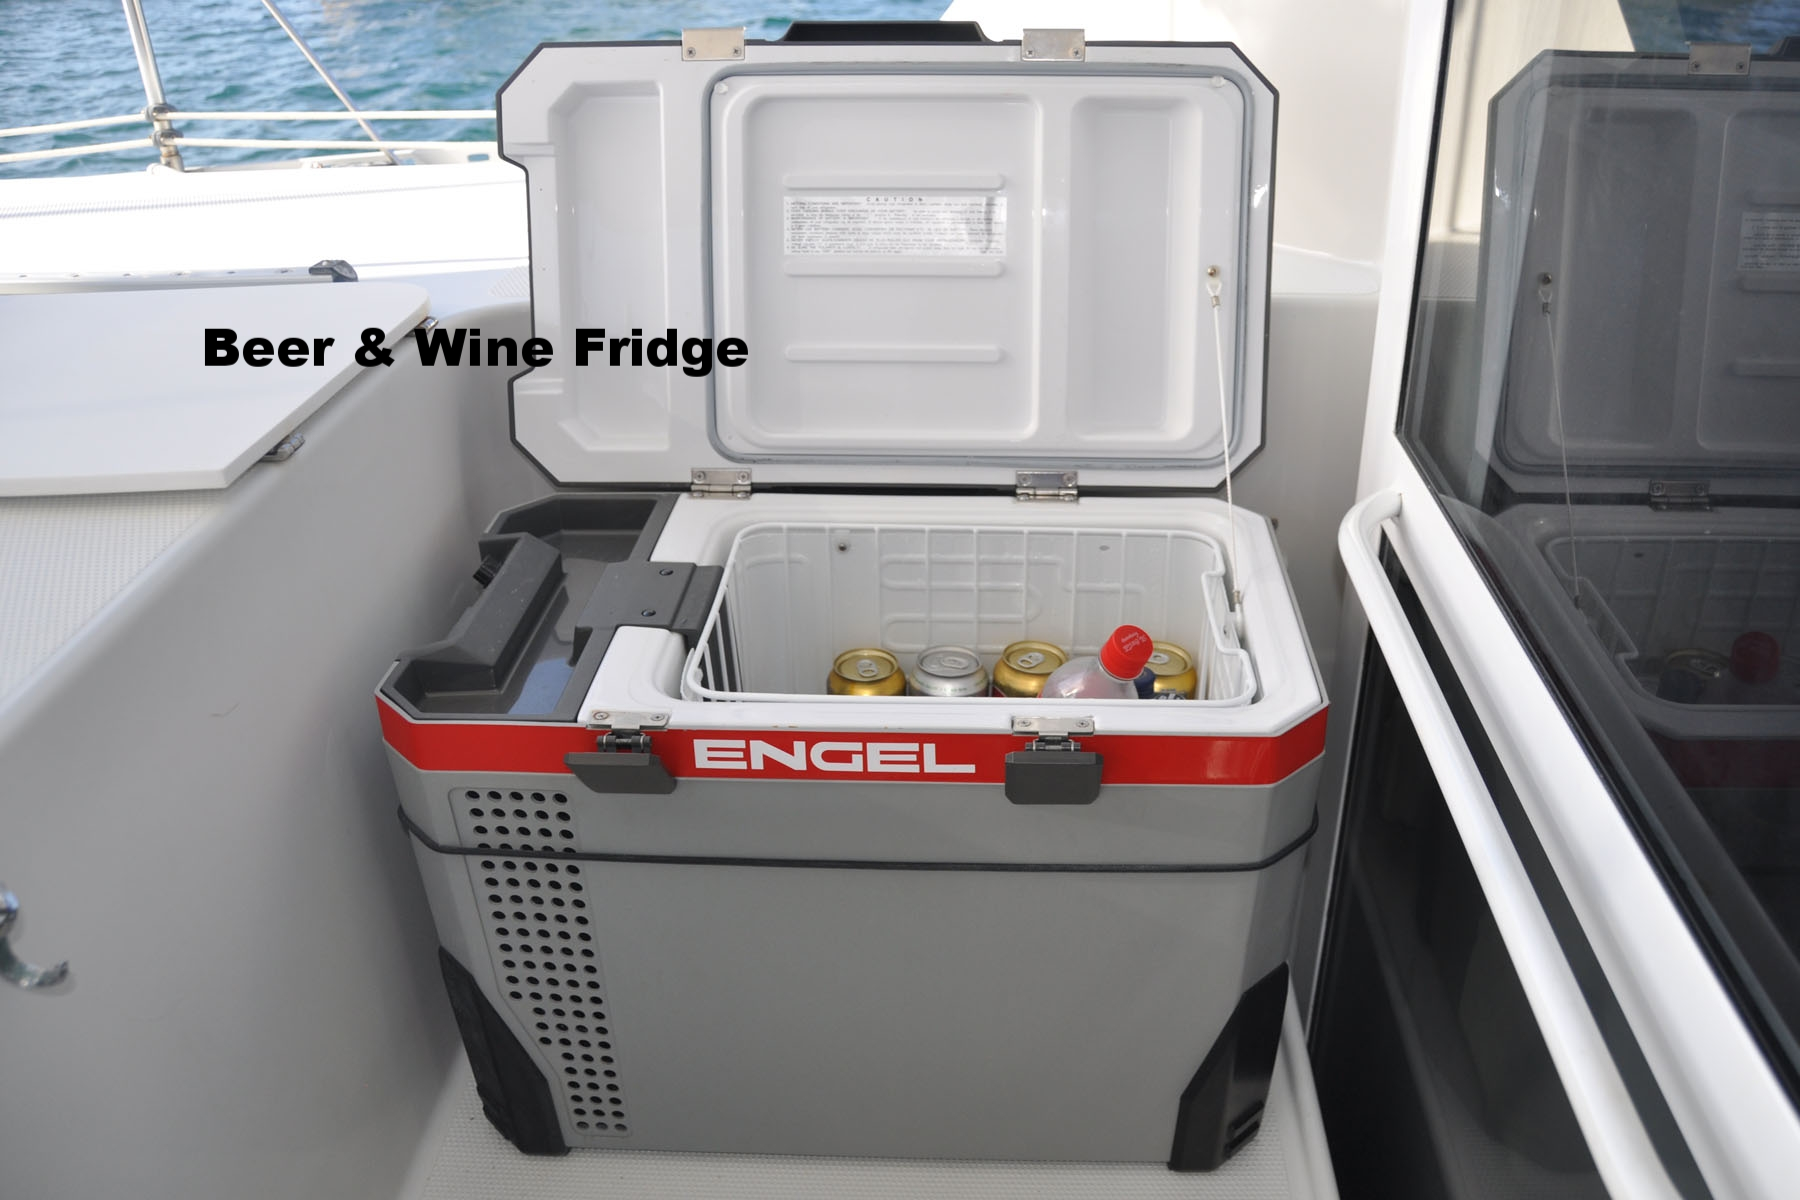 Engle Beer & Wine Fridge.JPG